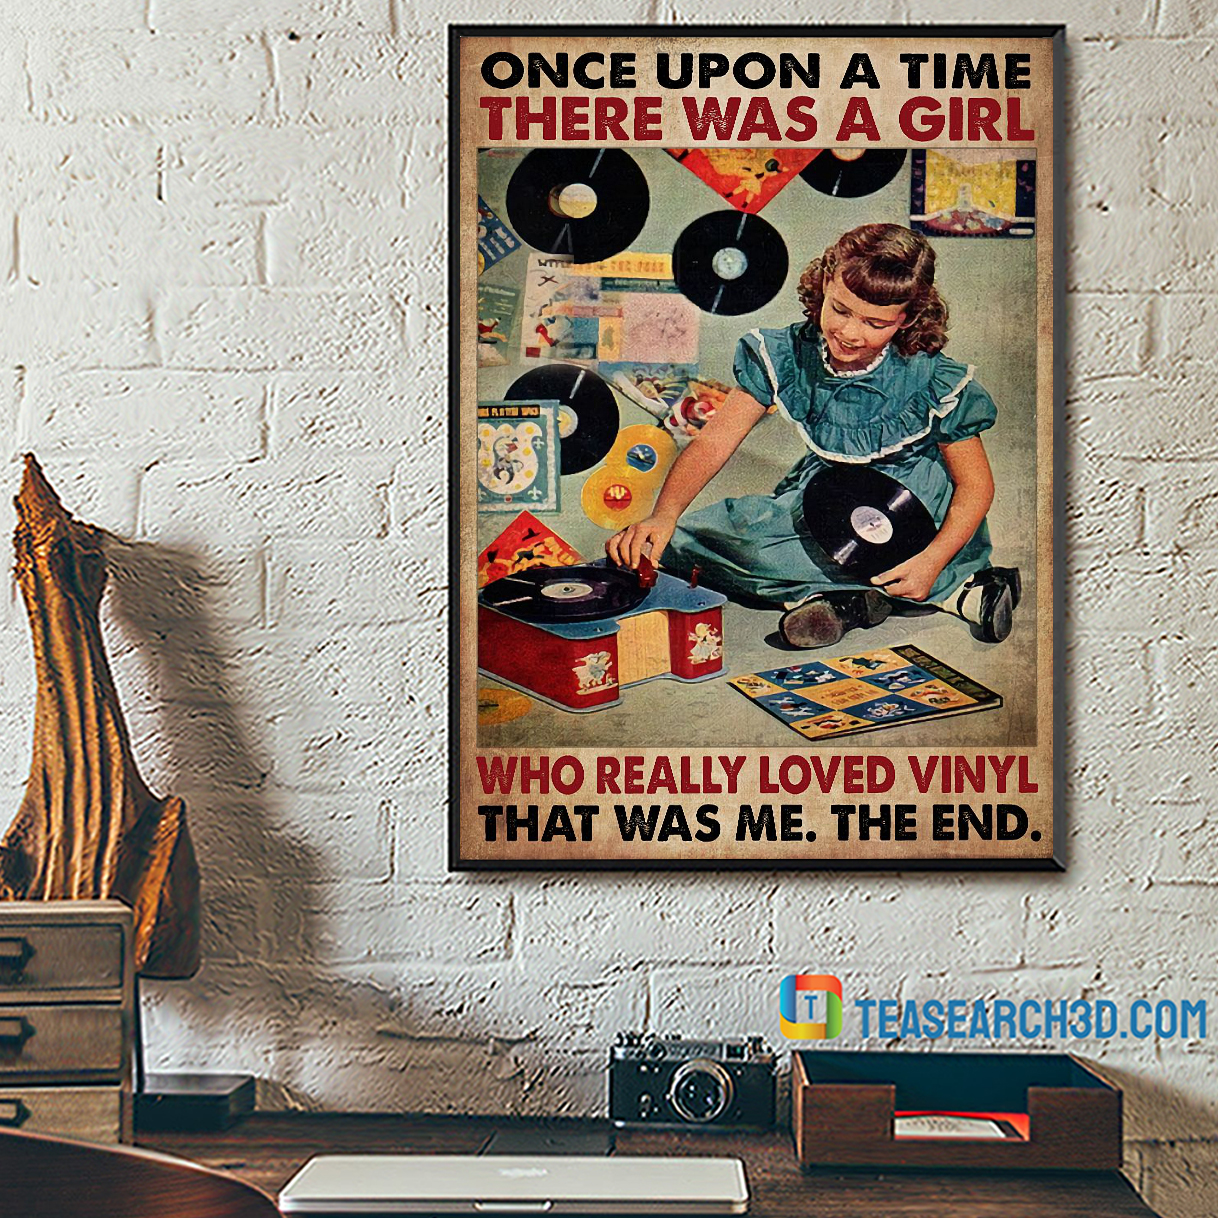 Once upon a time there was a girl who really loved vinyl poster A2